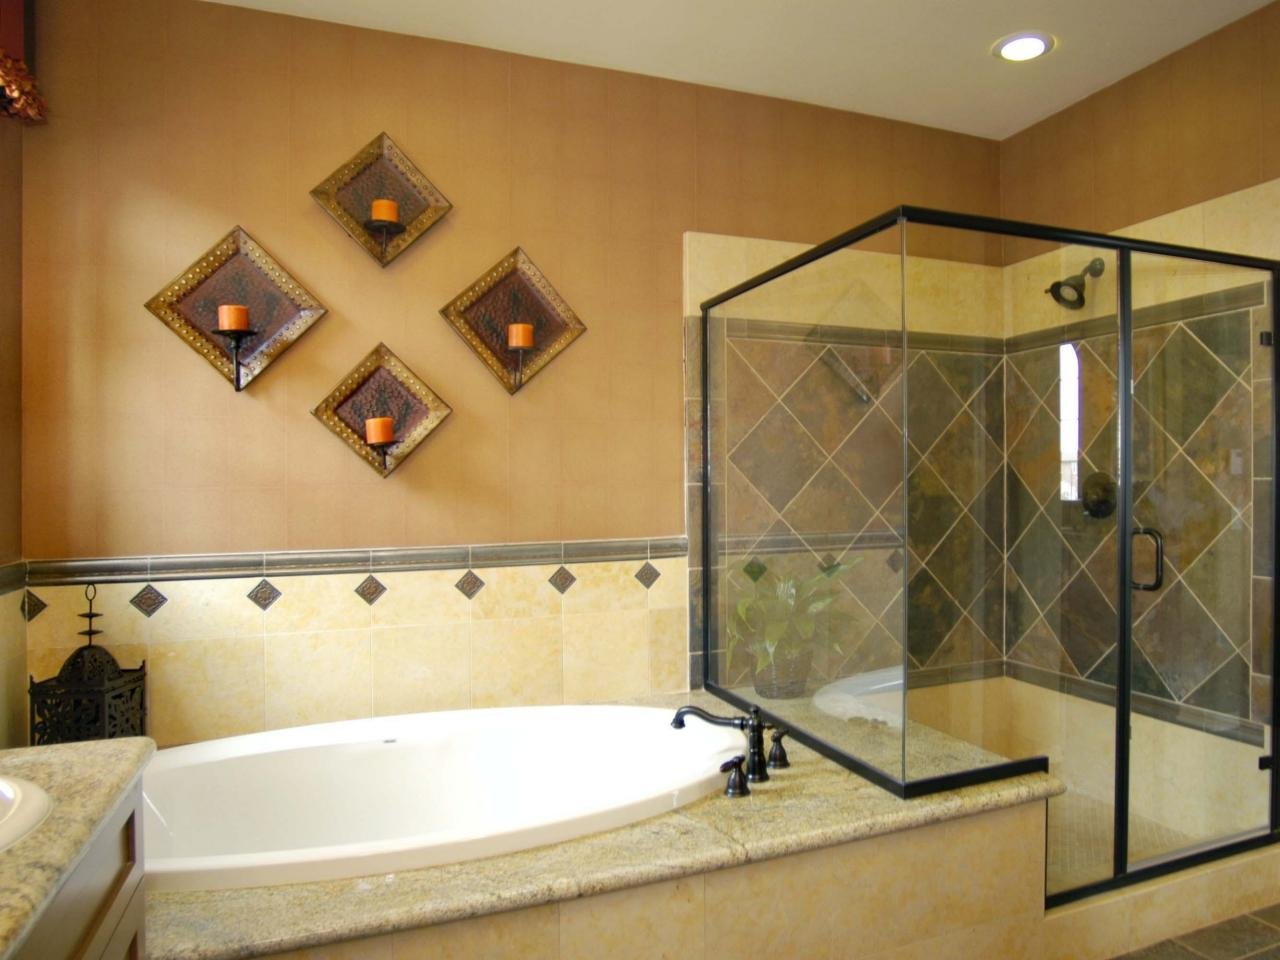 What to Look For In Handicap Accessible Bathtubs